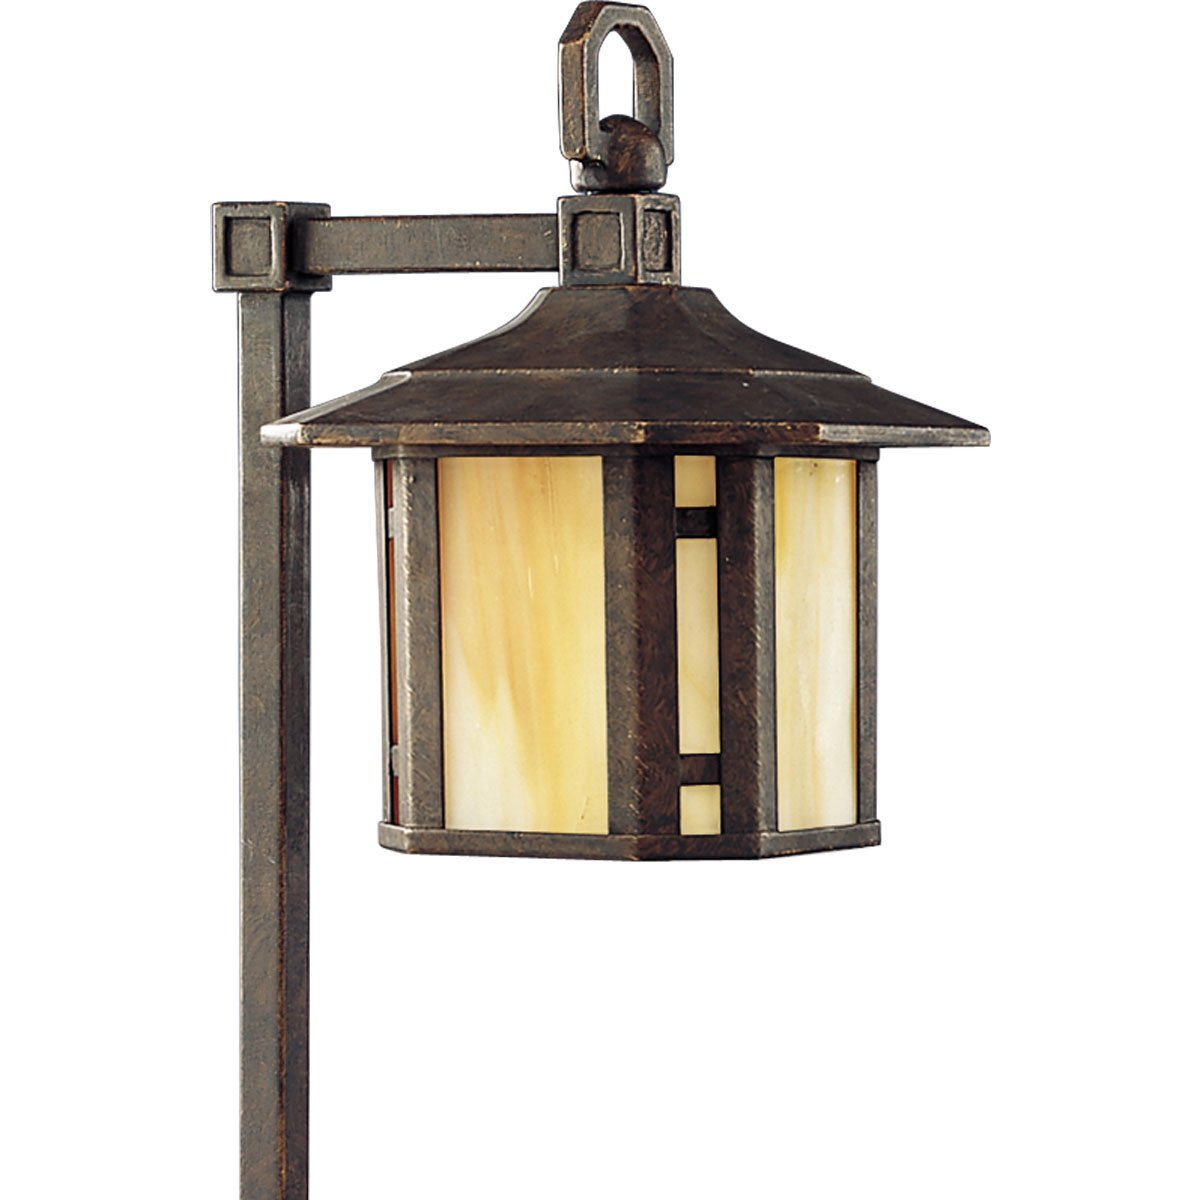 Progress Lighting P5272-46 1-Light Path Light with Honey Art Glass and Mica Accent Panels Weathered Bronze - Landscape Path Lights - Amazon.com  sc 1 st  Amazon.com & Progress Lighting P5272-46 1-Light Path Light with Honey Art Glass ... azcodes.com